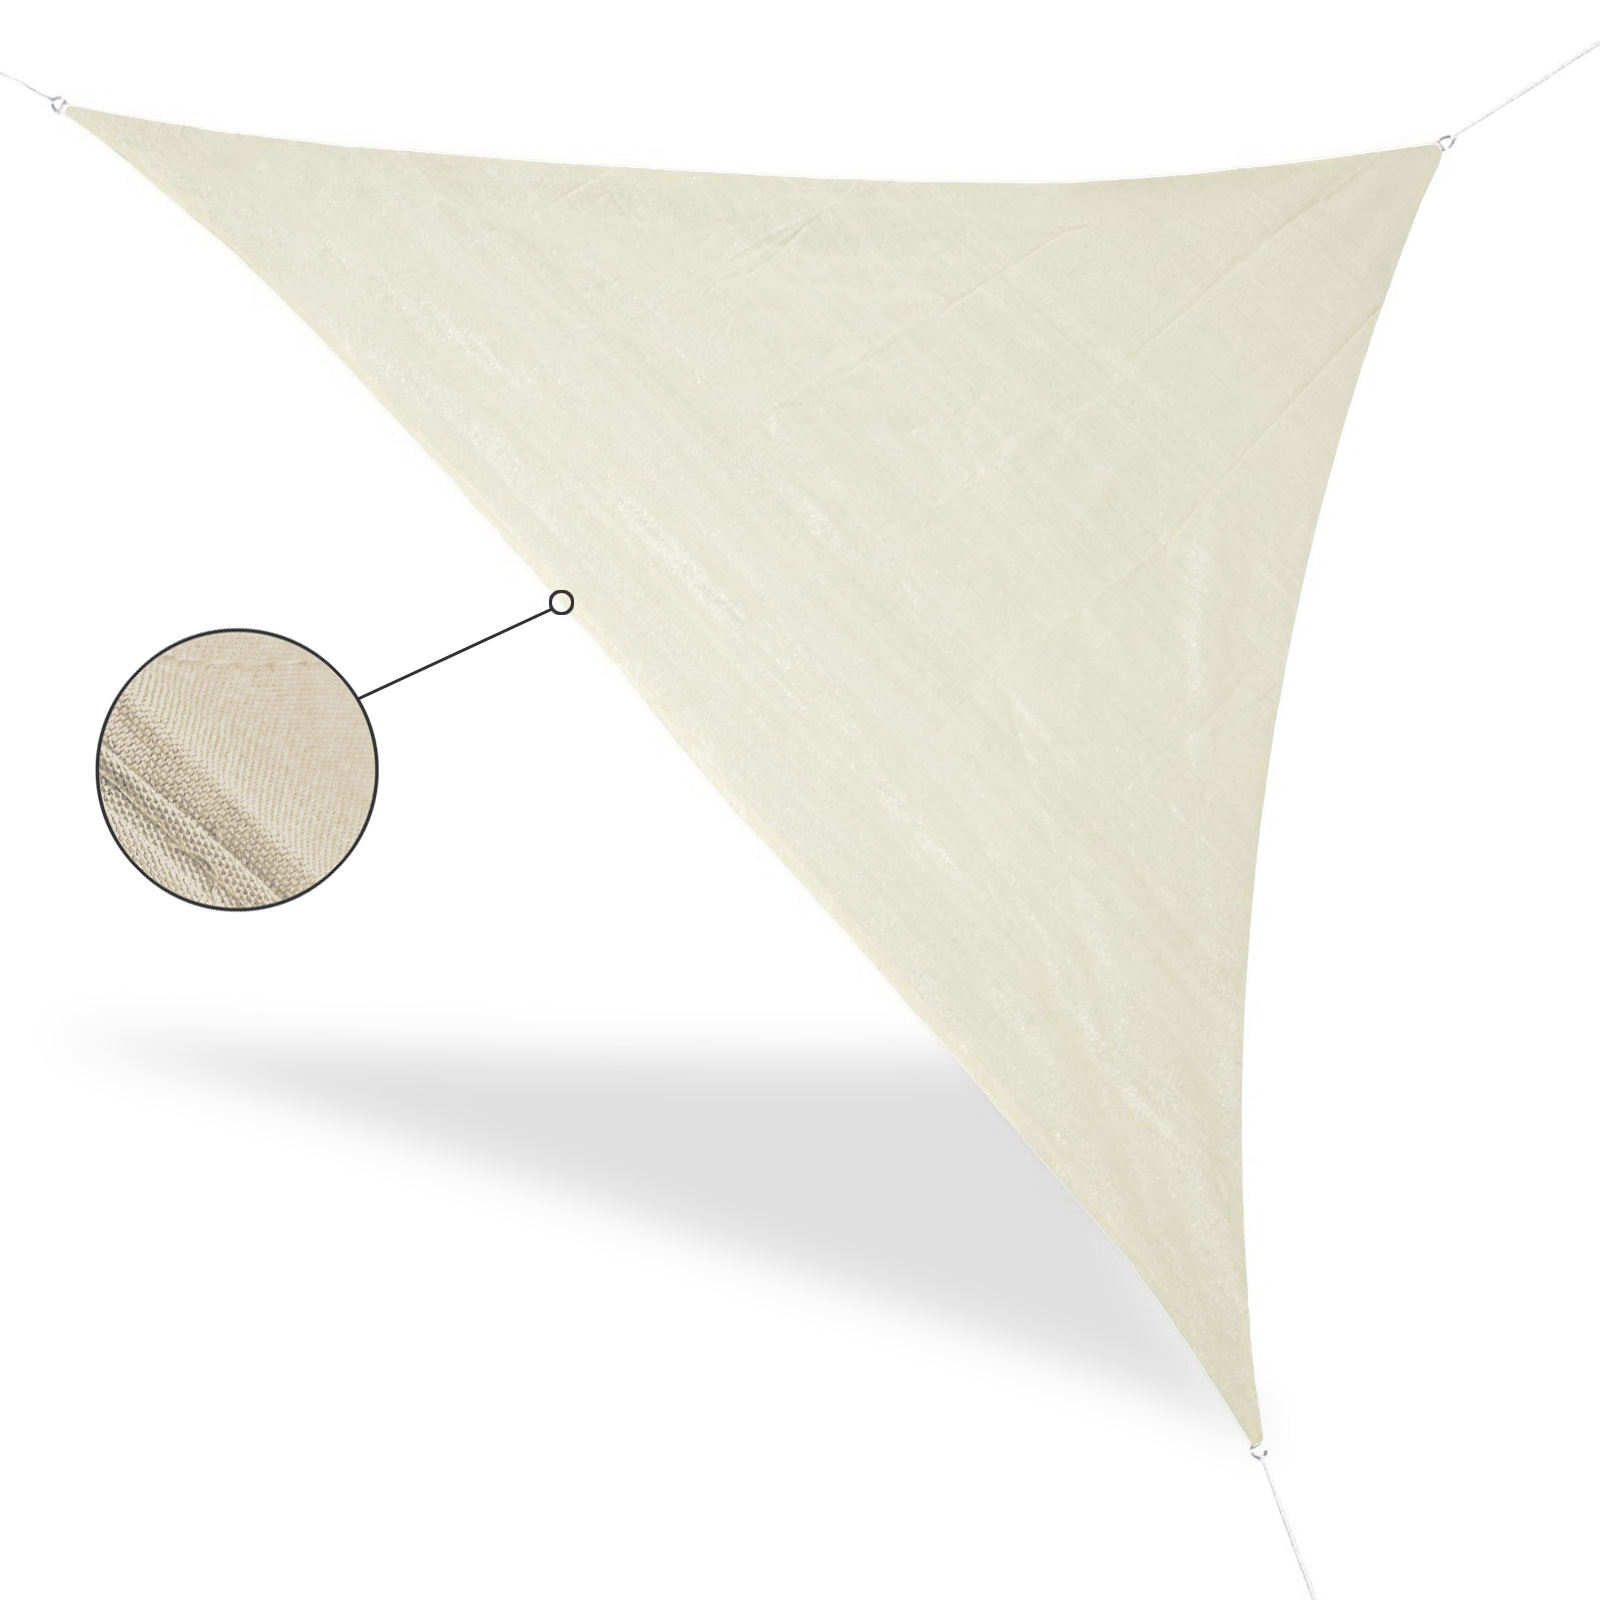 Awning Triangle Beige 5 x 5 x 5 m, metal rings, guy ropes